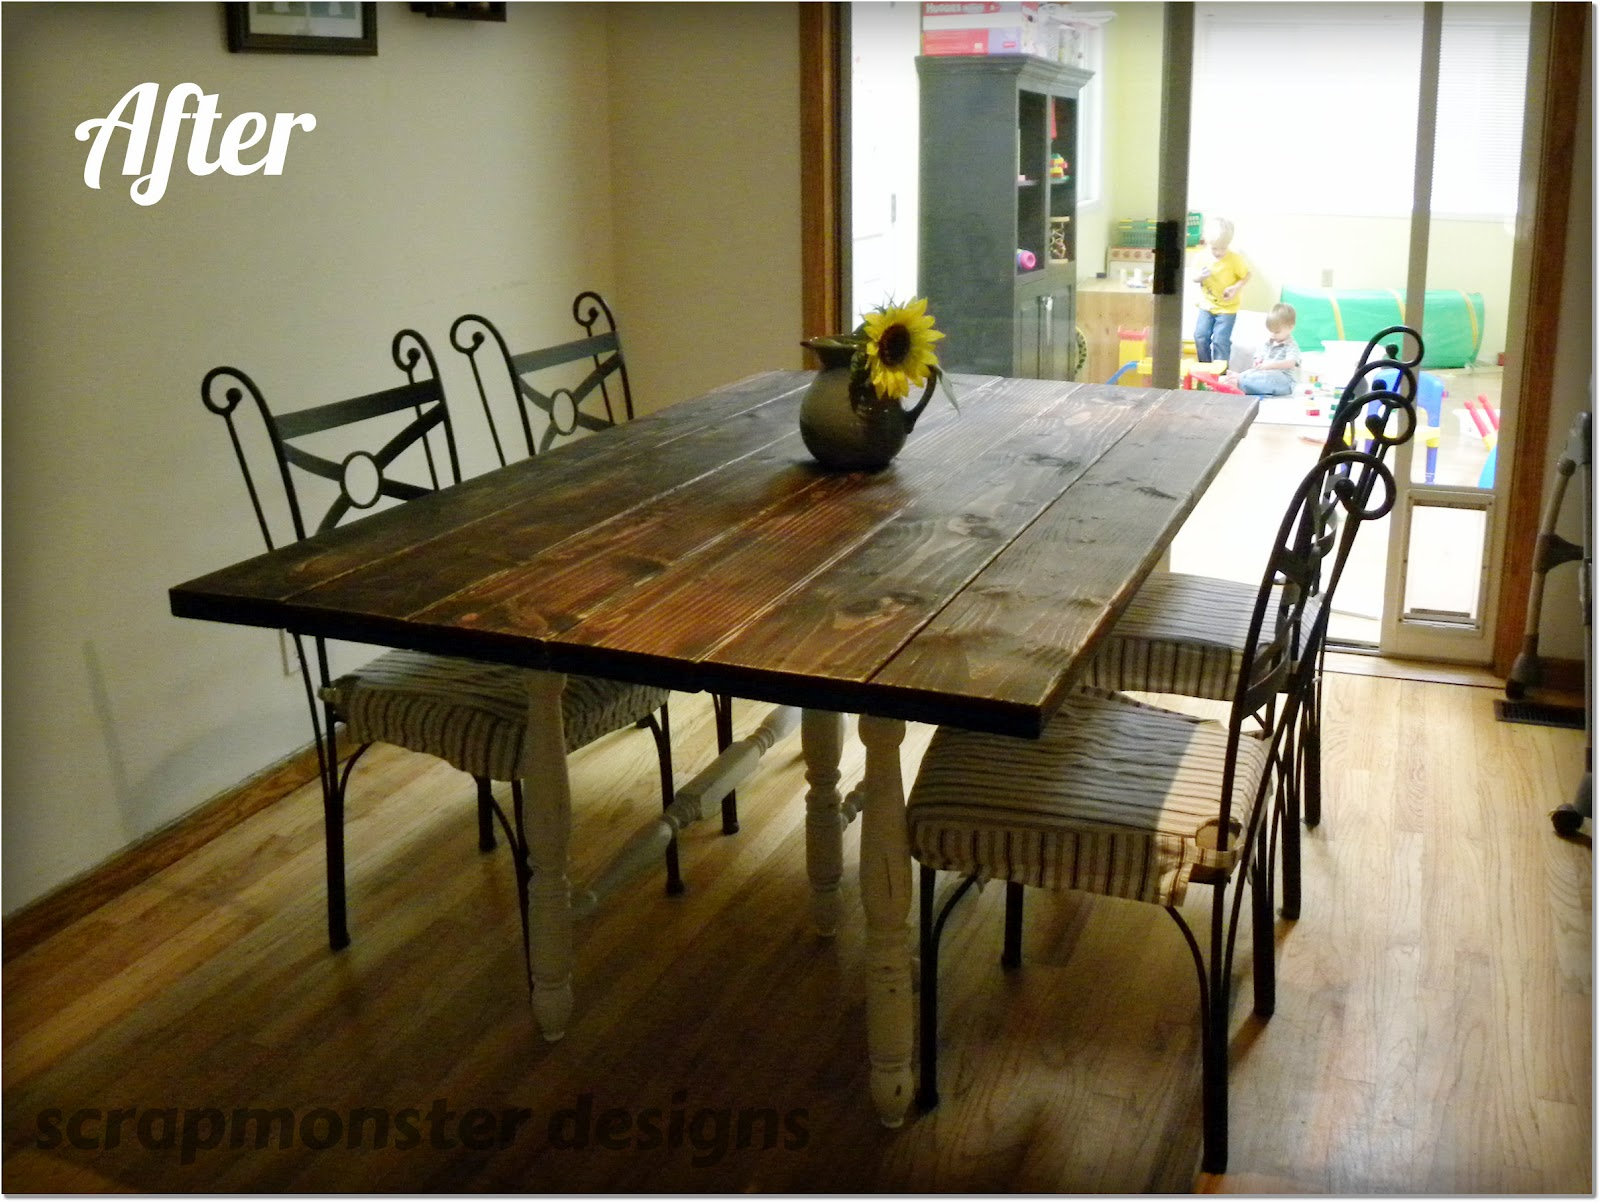 scrapmonster rustic dining table make over. Black Bedroom Furniture Sets. Home Design Ideas